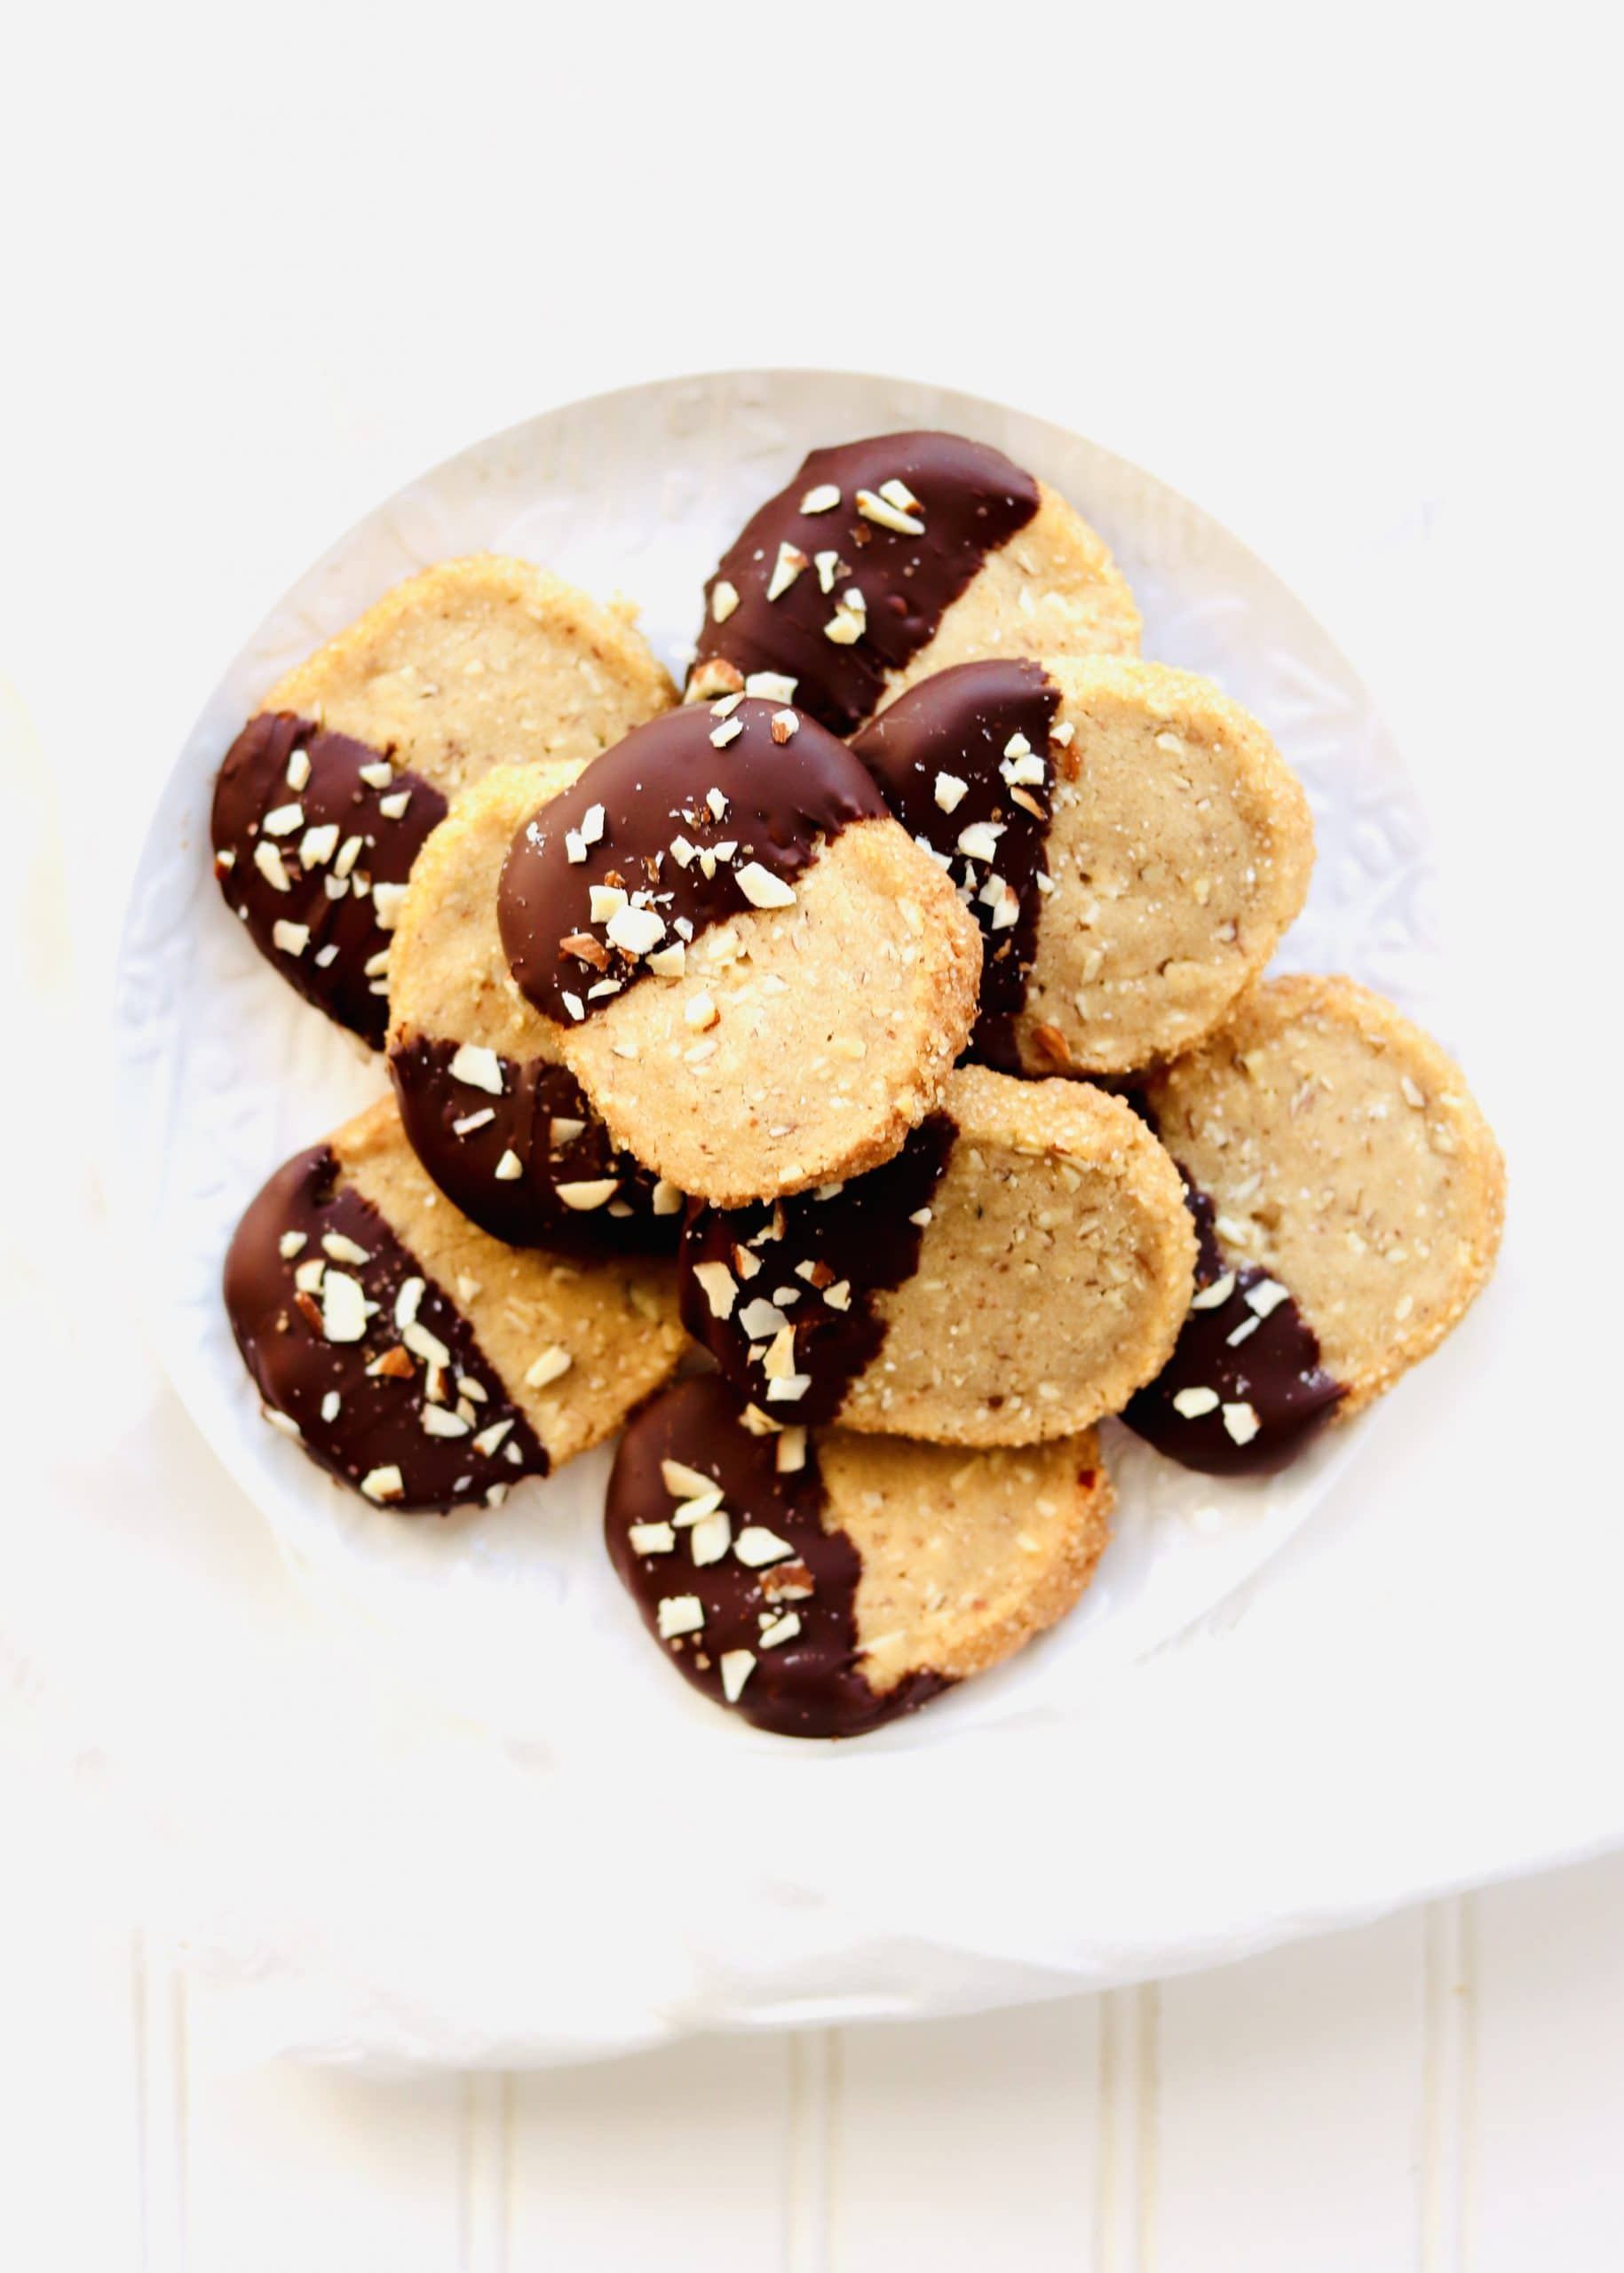 Brown Butter Almond Shortbread Cookies are perfect to make for the holidays. Drizzling or dipping the shortbread cookies in melted chocolate takes them over the top! Just slice the cookie dough log into cookies and bake. Recipe at KathleensCravings.com #kathleenscravings #shortbreadcookies #cookies #brownbutter #christmascookies #holidaycookies